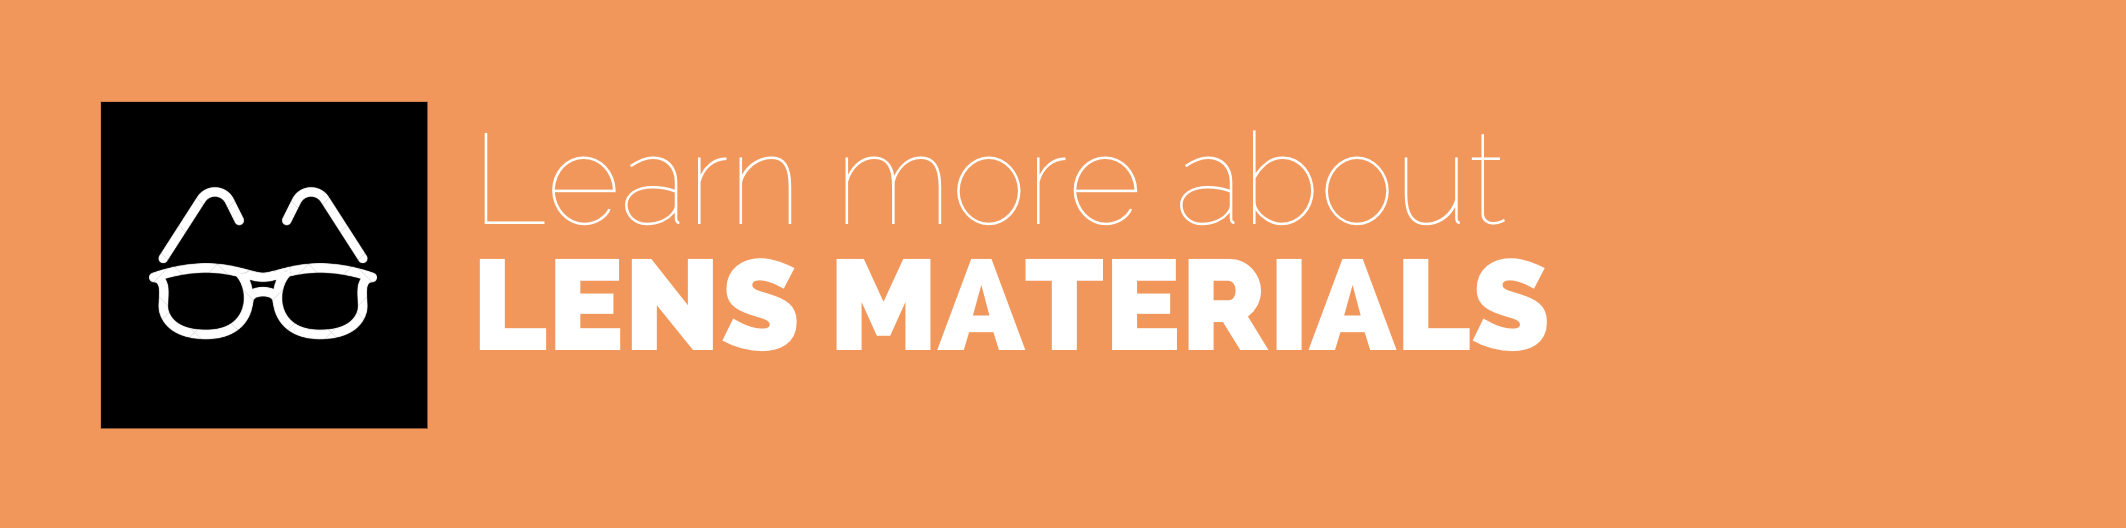 learn more about lens materials